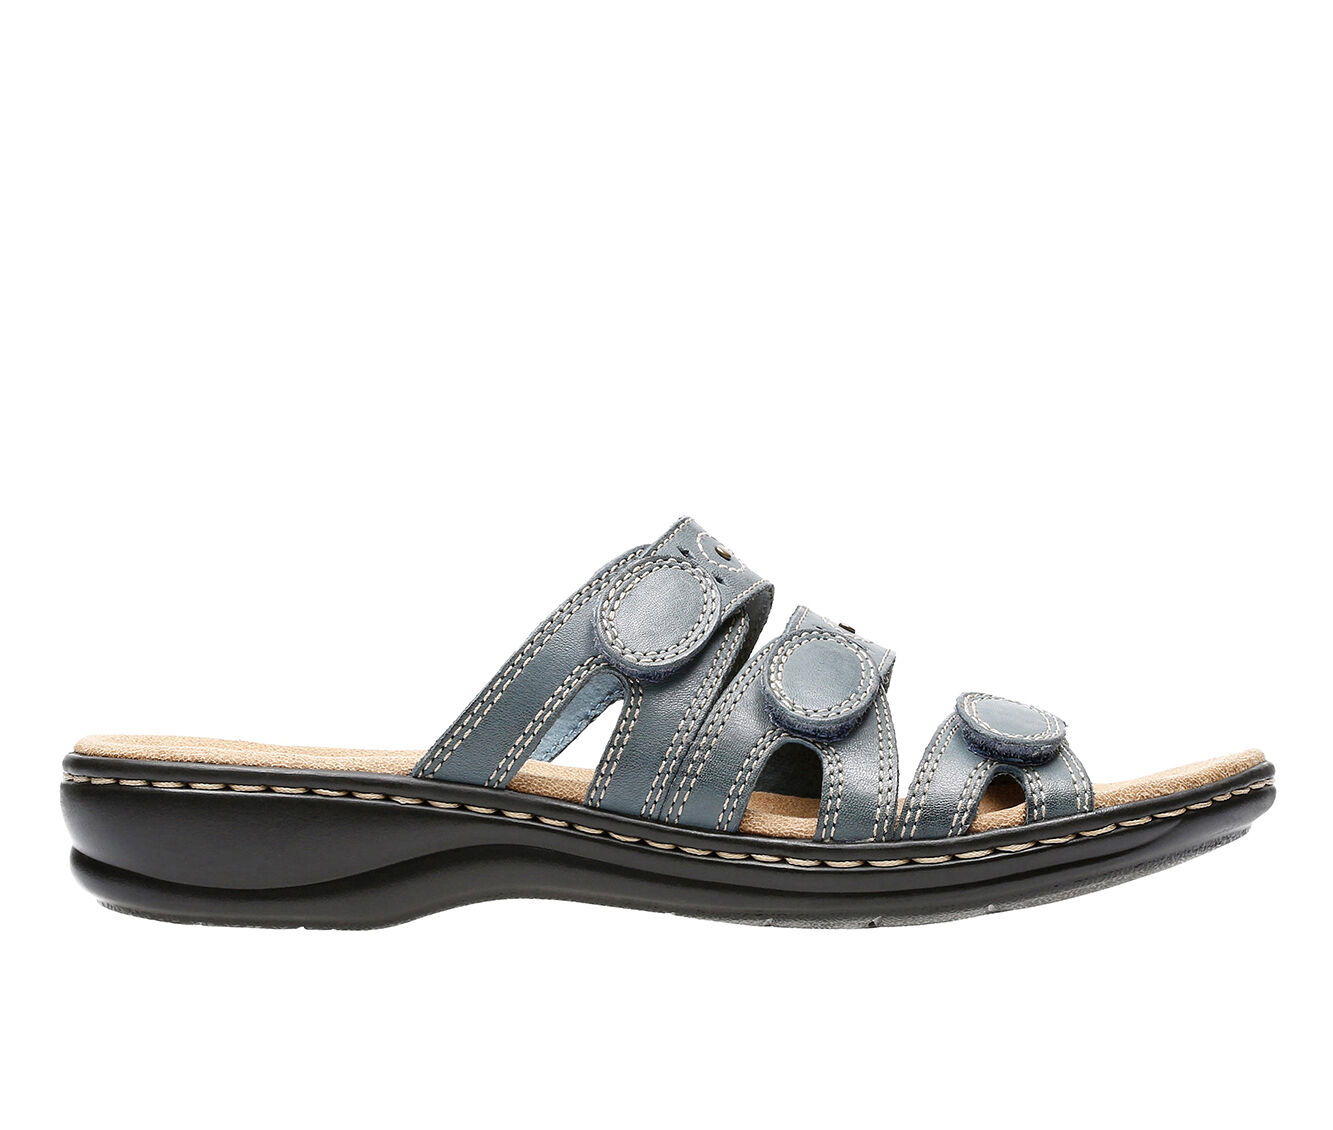 Women's Clarks Leisa Cacti Sandals Denim Blue